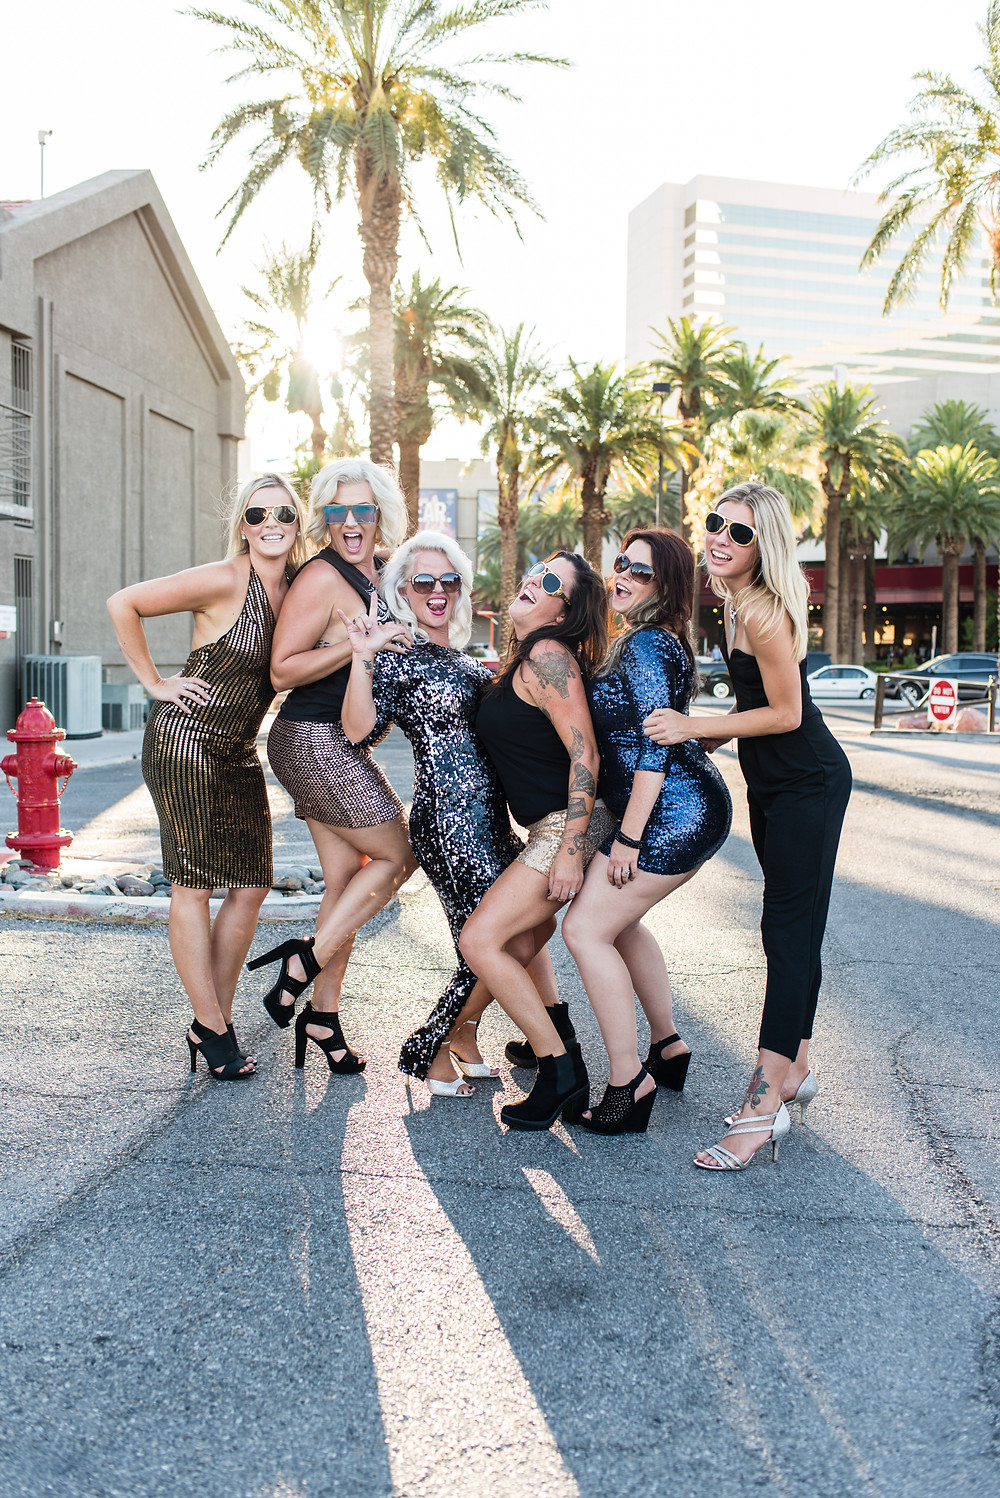 bridal party in las vegas, Nevada having a rad time